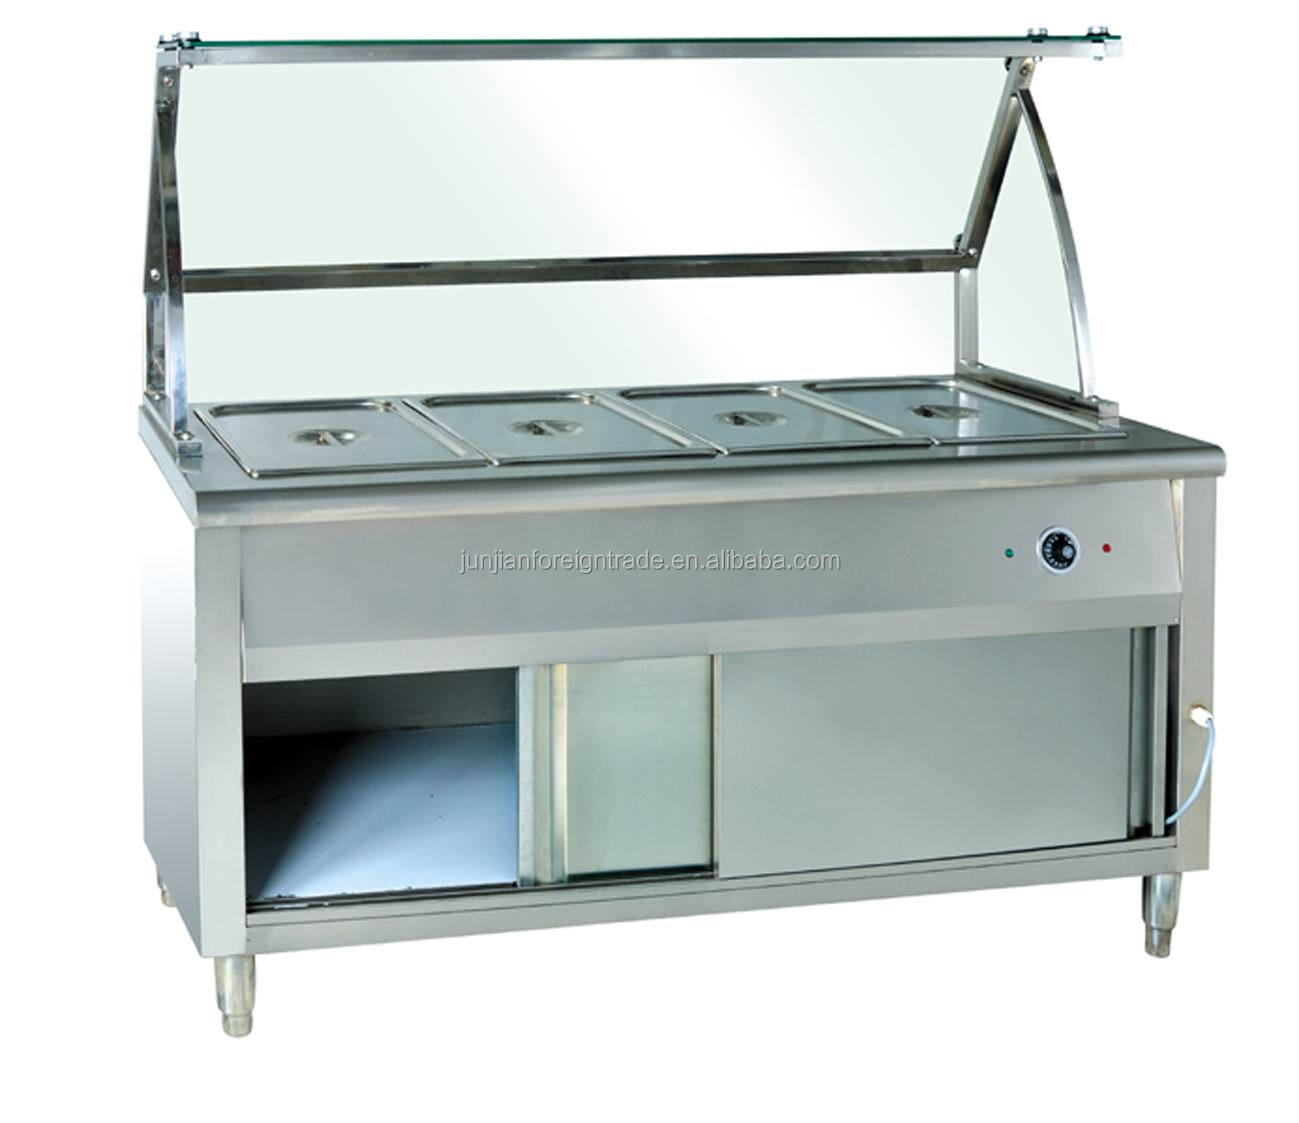 High quality food warmer trolley kitchen equipment for Cuisine commerciale equipement